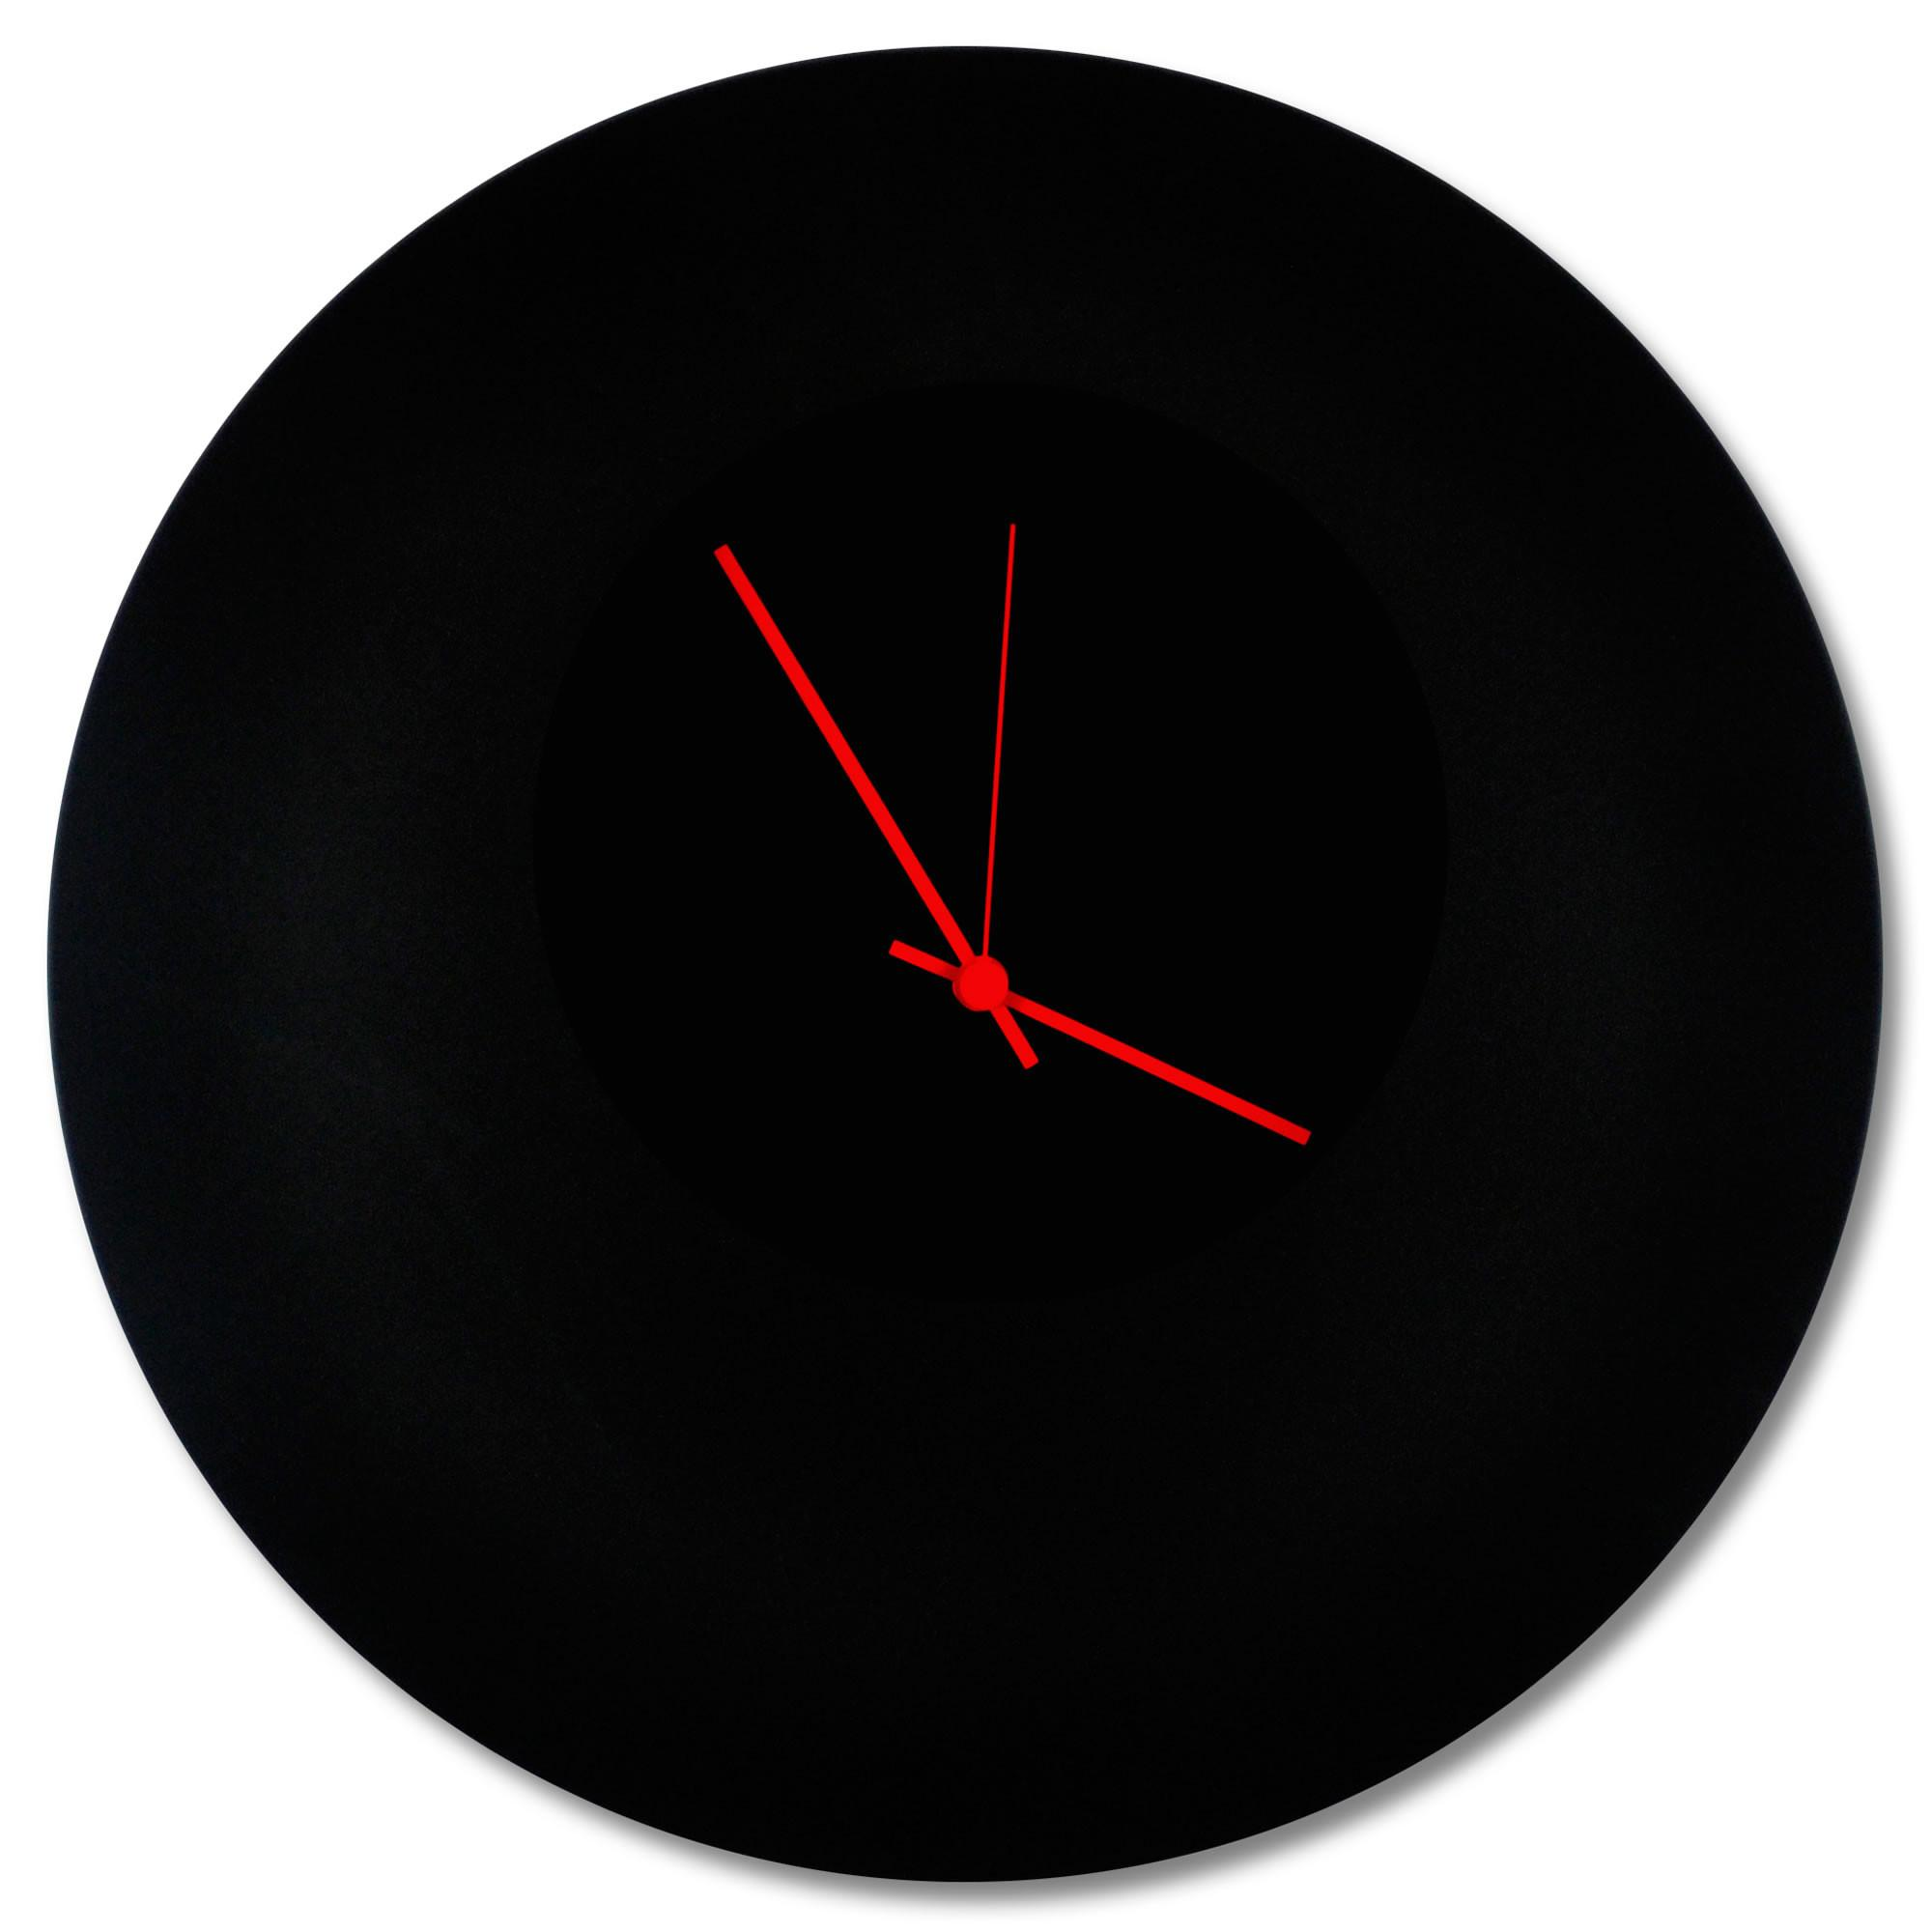 Wall Decor Sale Blackout Red Circle Clock Modern